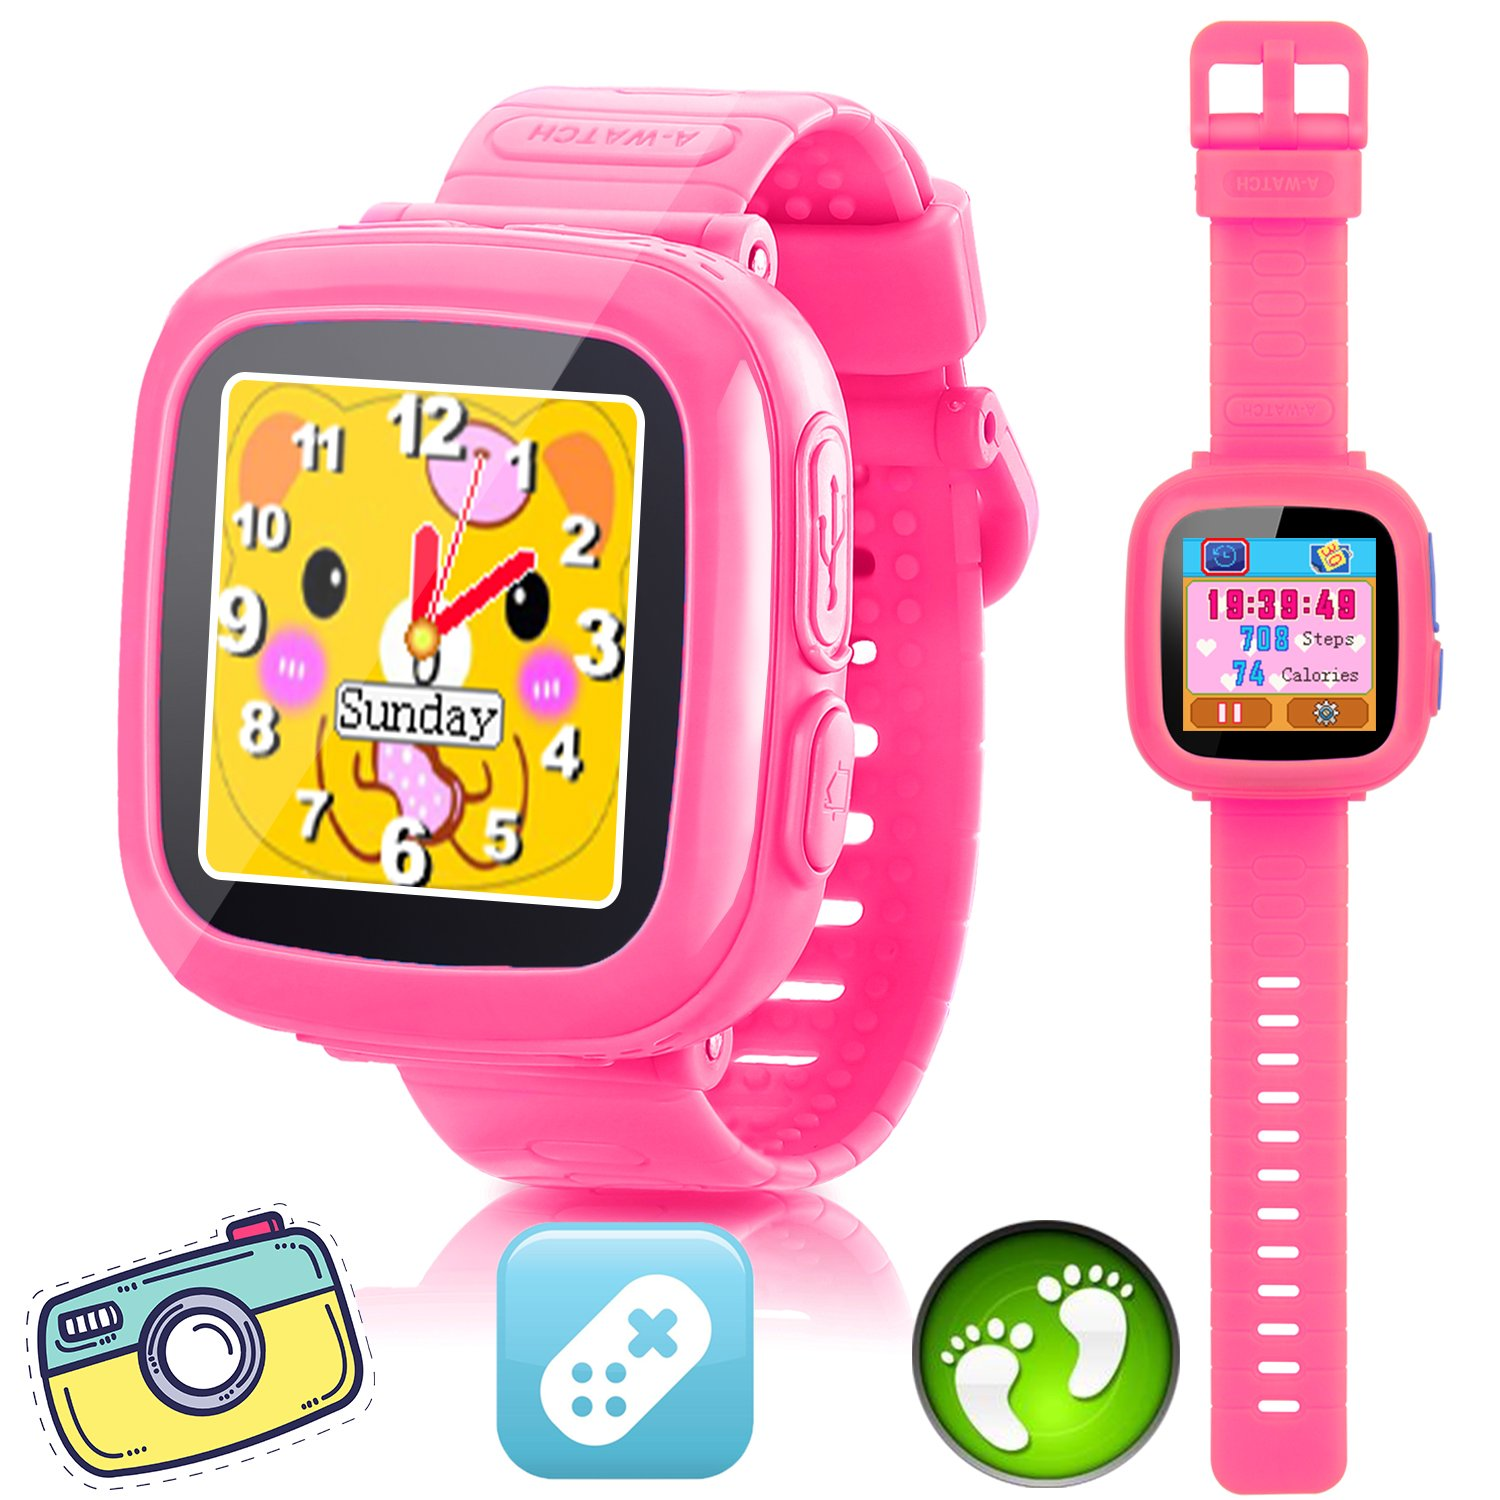 GBD Kids Game Watch,1.5'' Touch Smart Watches for Summer Birthday Gifts Travel Camping Kids Boys Girls with Pedometer Camera Alarm Clock Electronic Learning Toys (02Pink) by GBD (Image #1)